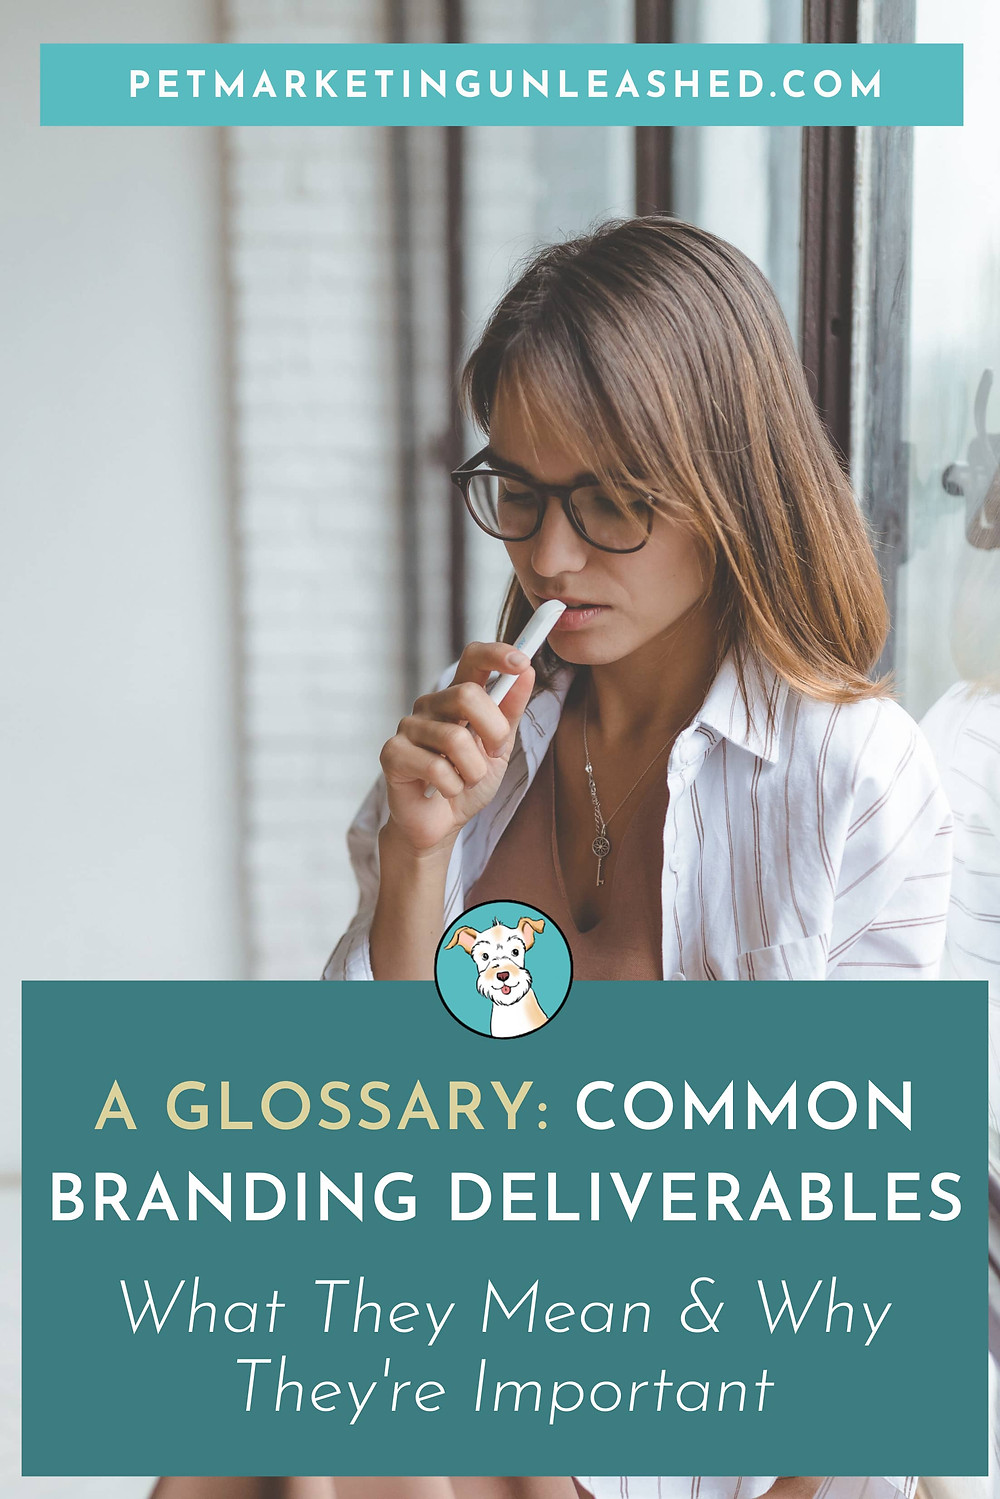 A Glossary - Common Branding Deliverables, What They Mean & Why They're Important with Pet Marketing Unleashed for Pet Businesses